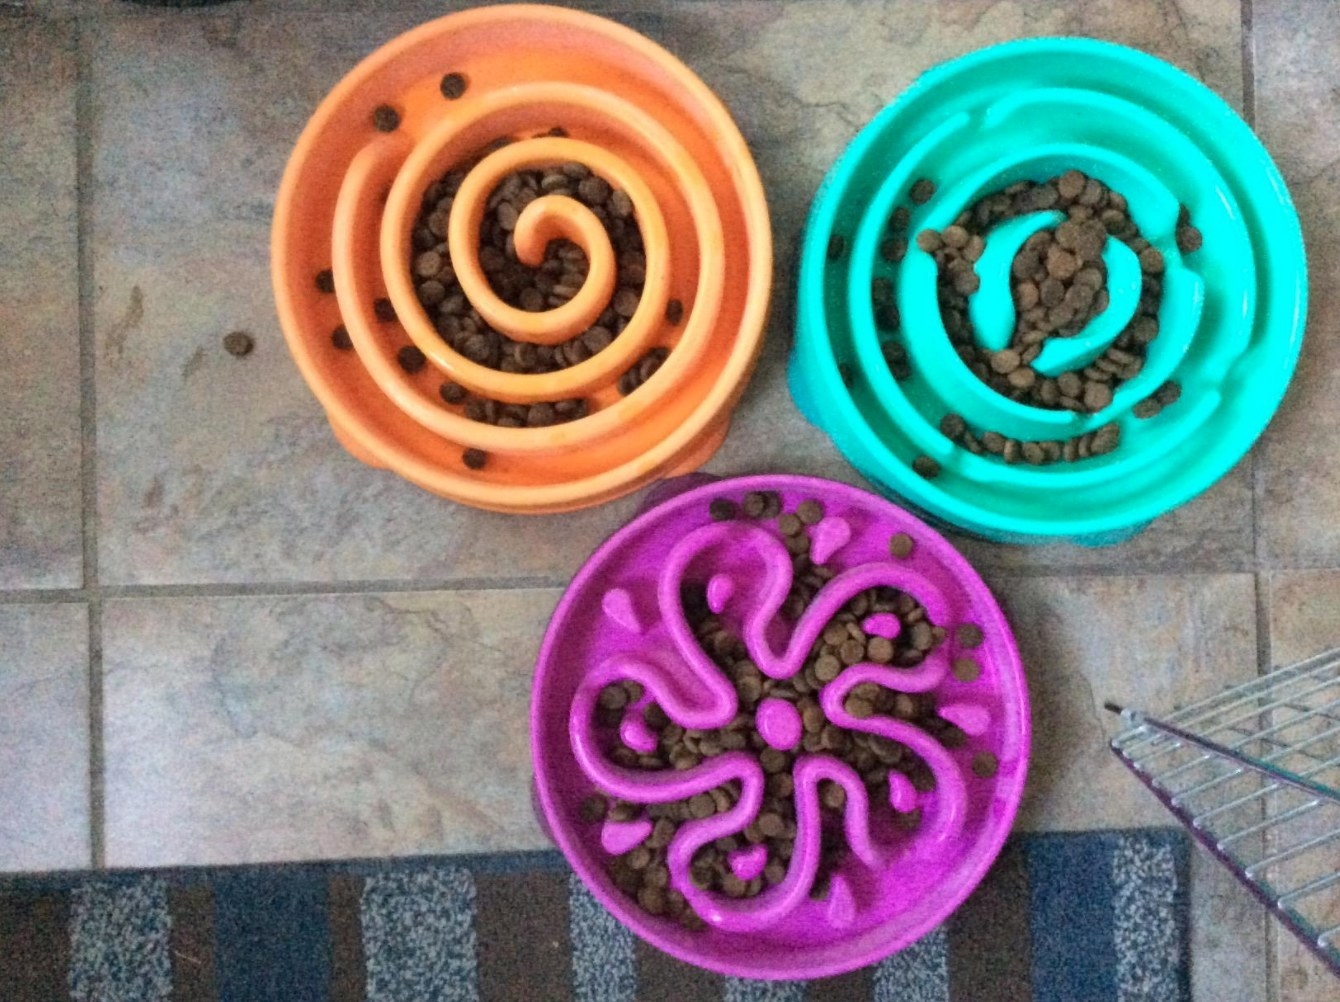 The fun feeder in three different colors